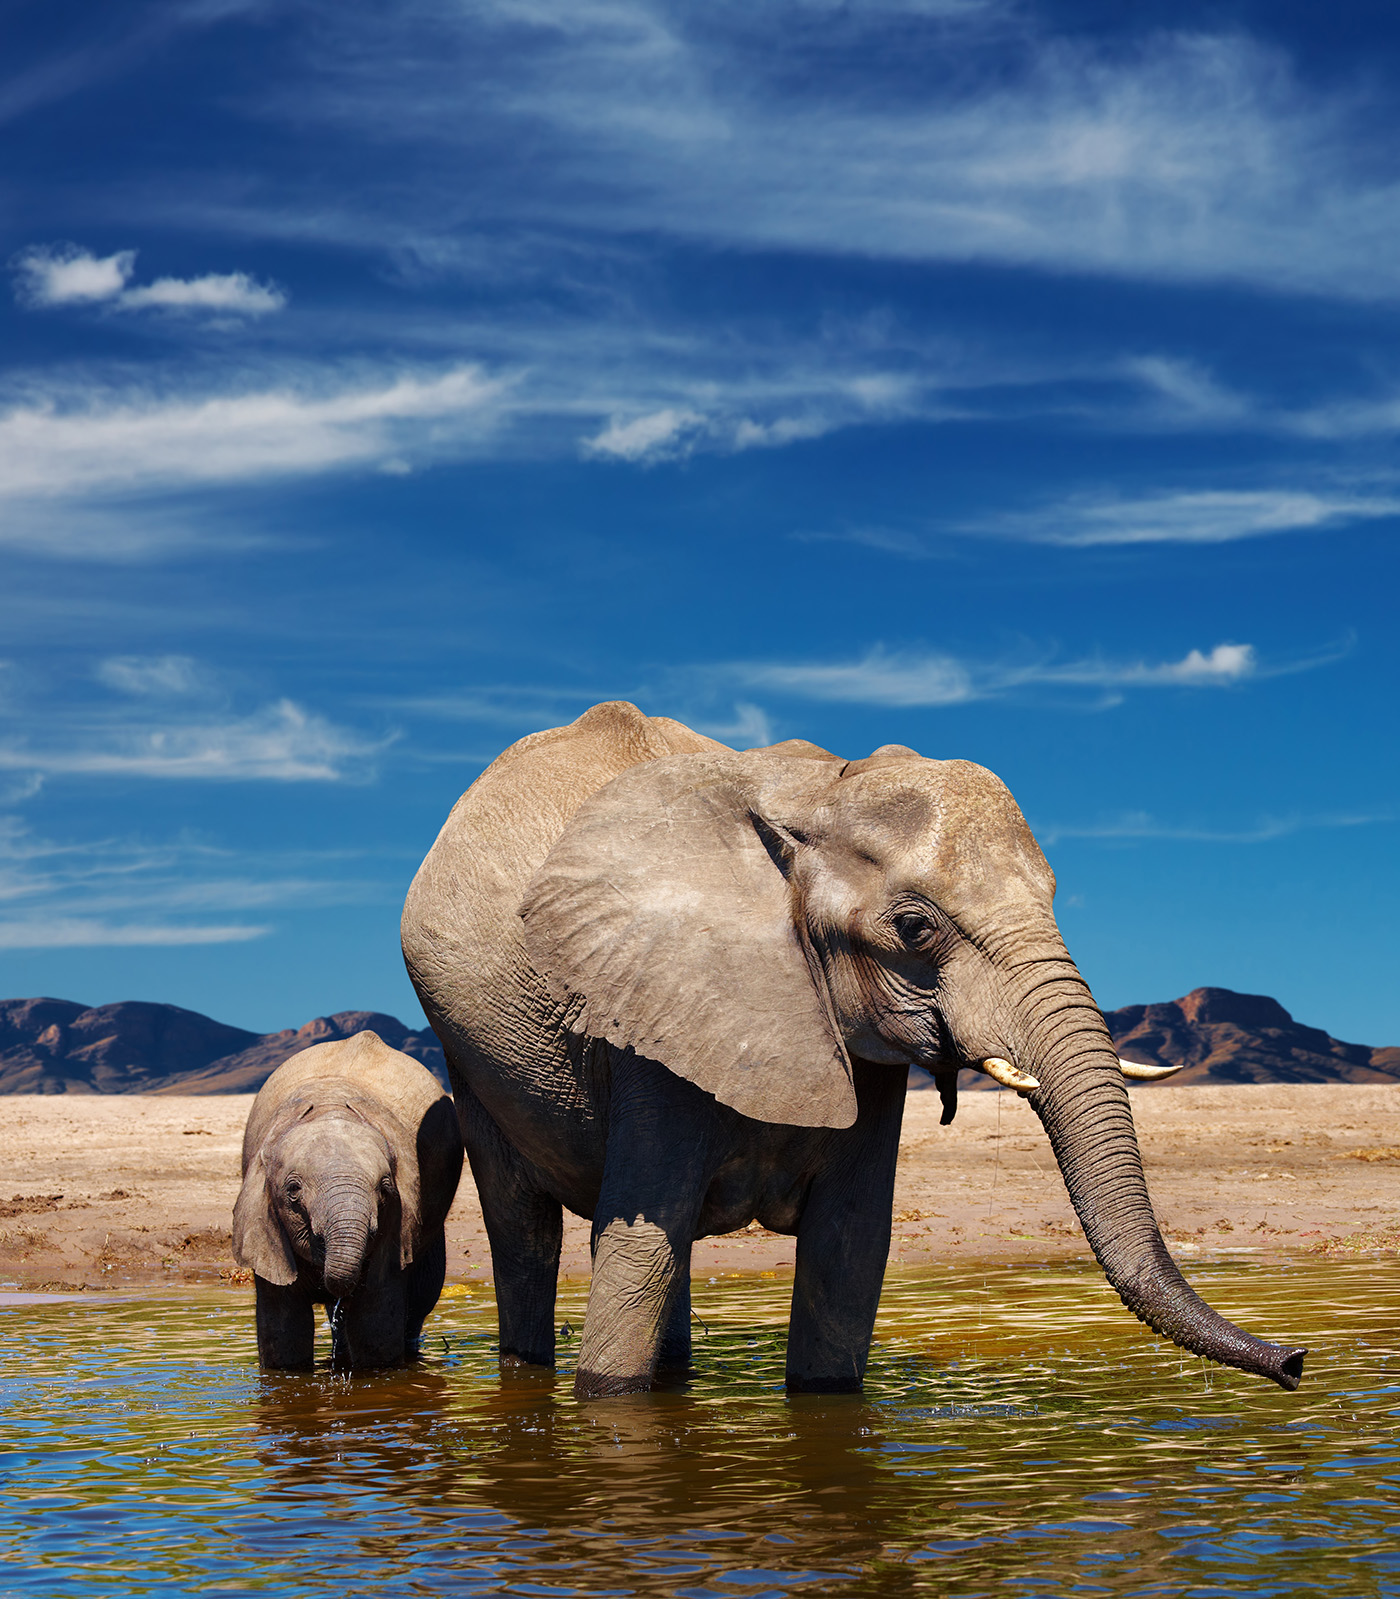 The elephant in the river water baby elephant 50836